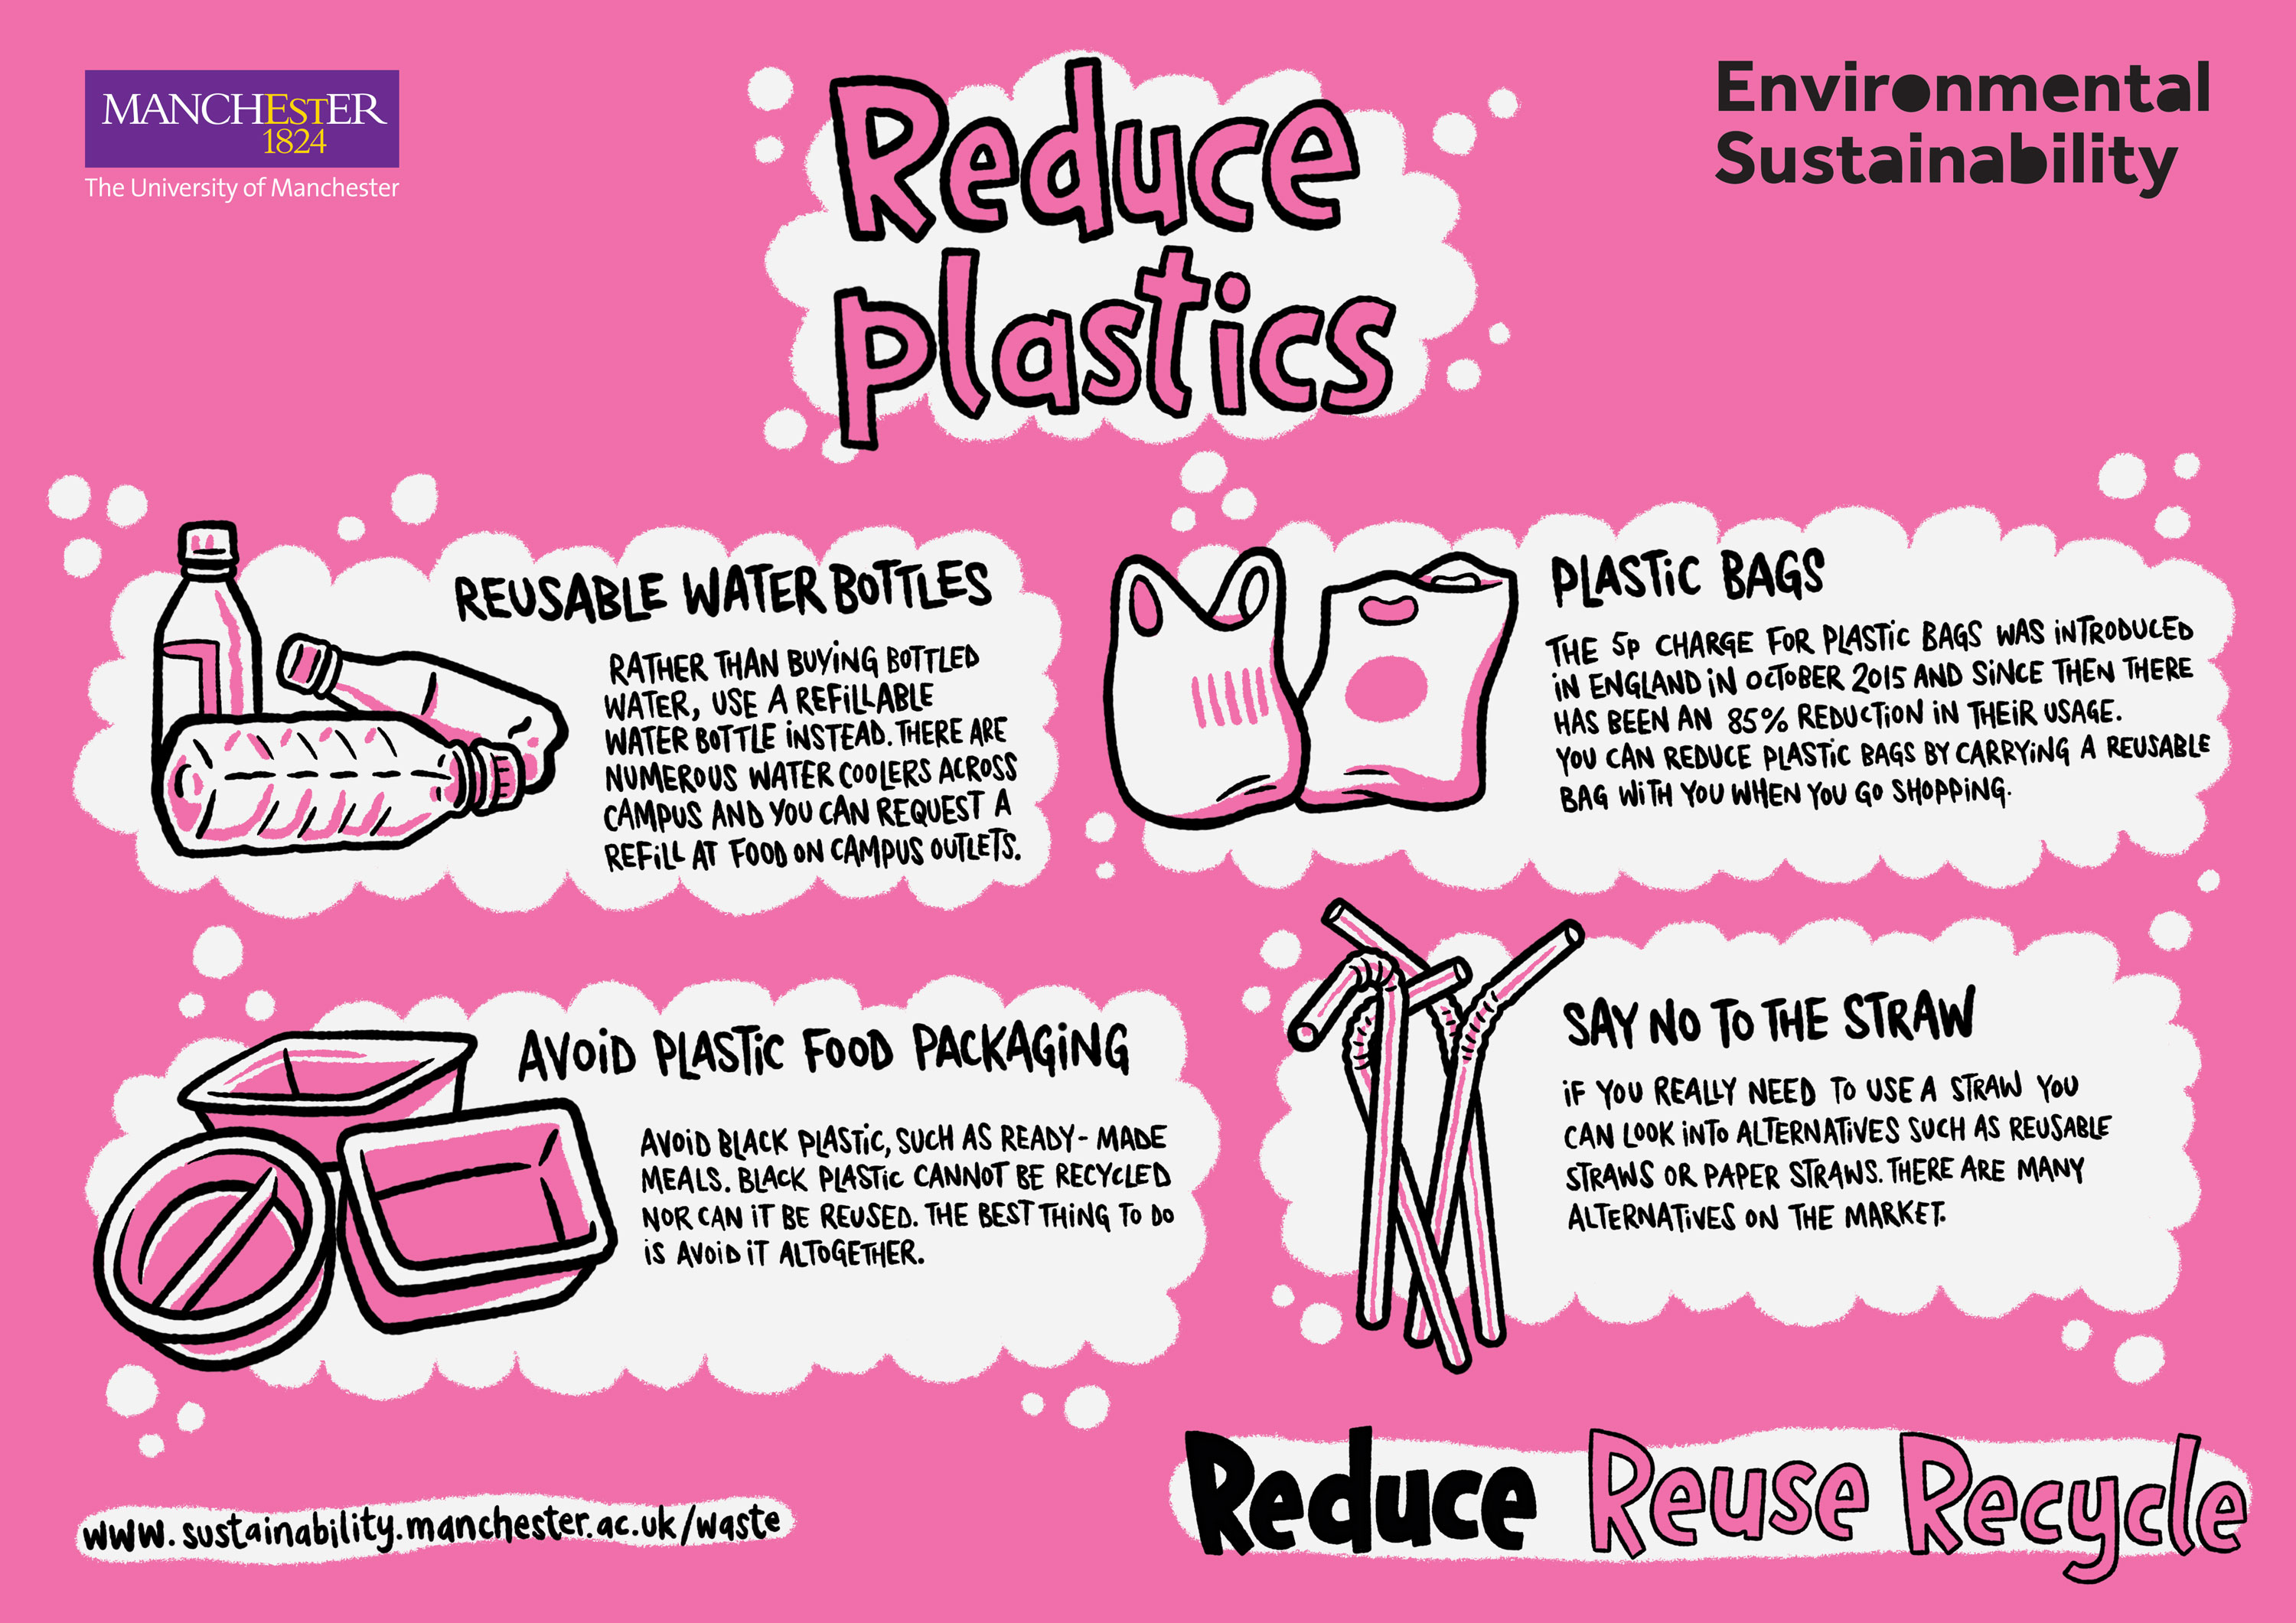 Plastic reduction (The University of Manchester)